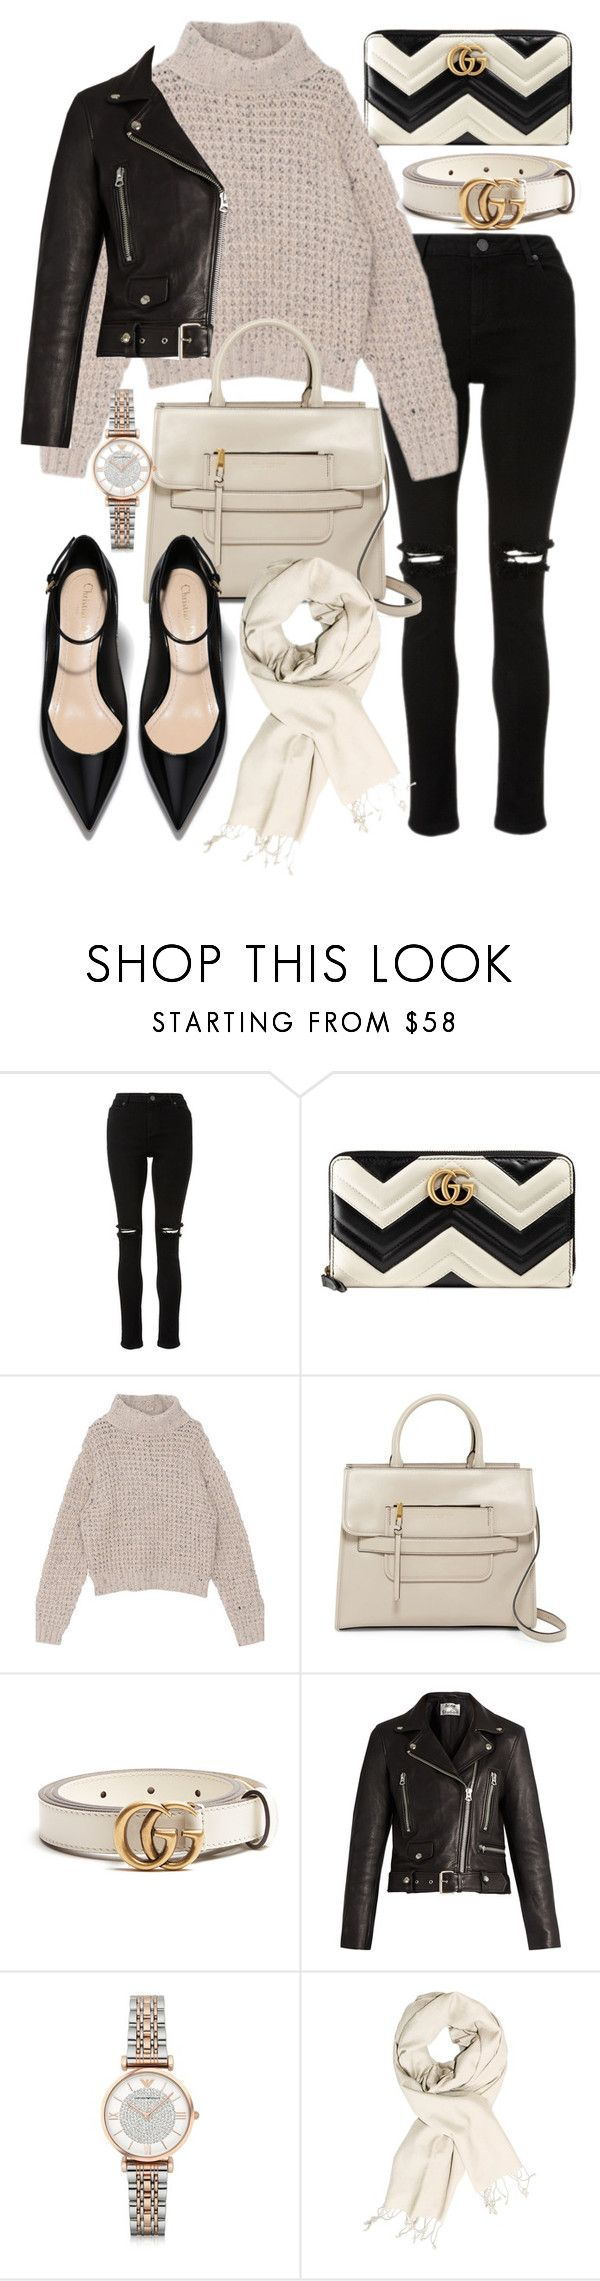 """Untitled #22196"" by florencia95 ❤ liked on Polyvore featuring Gucci, Marc Jacobs, Acne Studios and Emporio Armani"